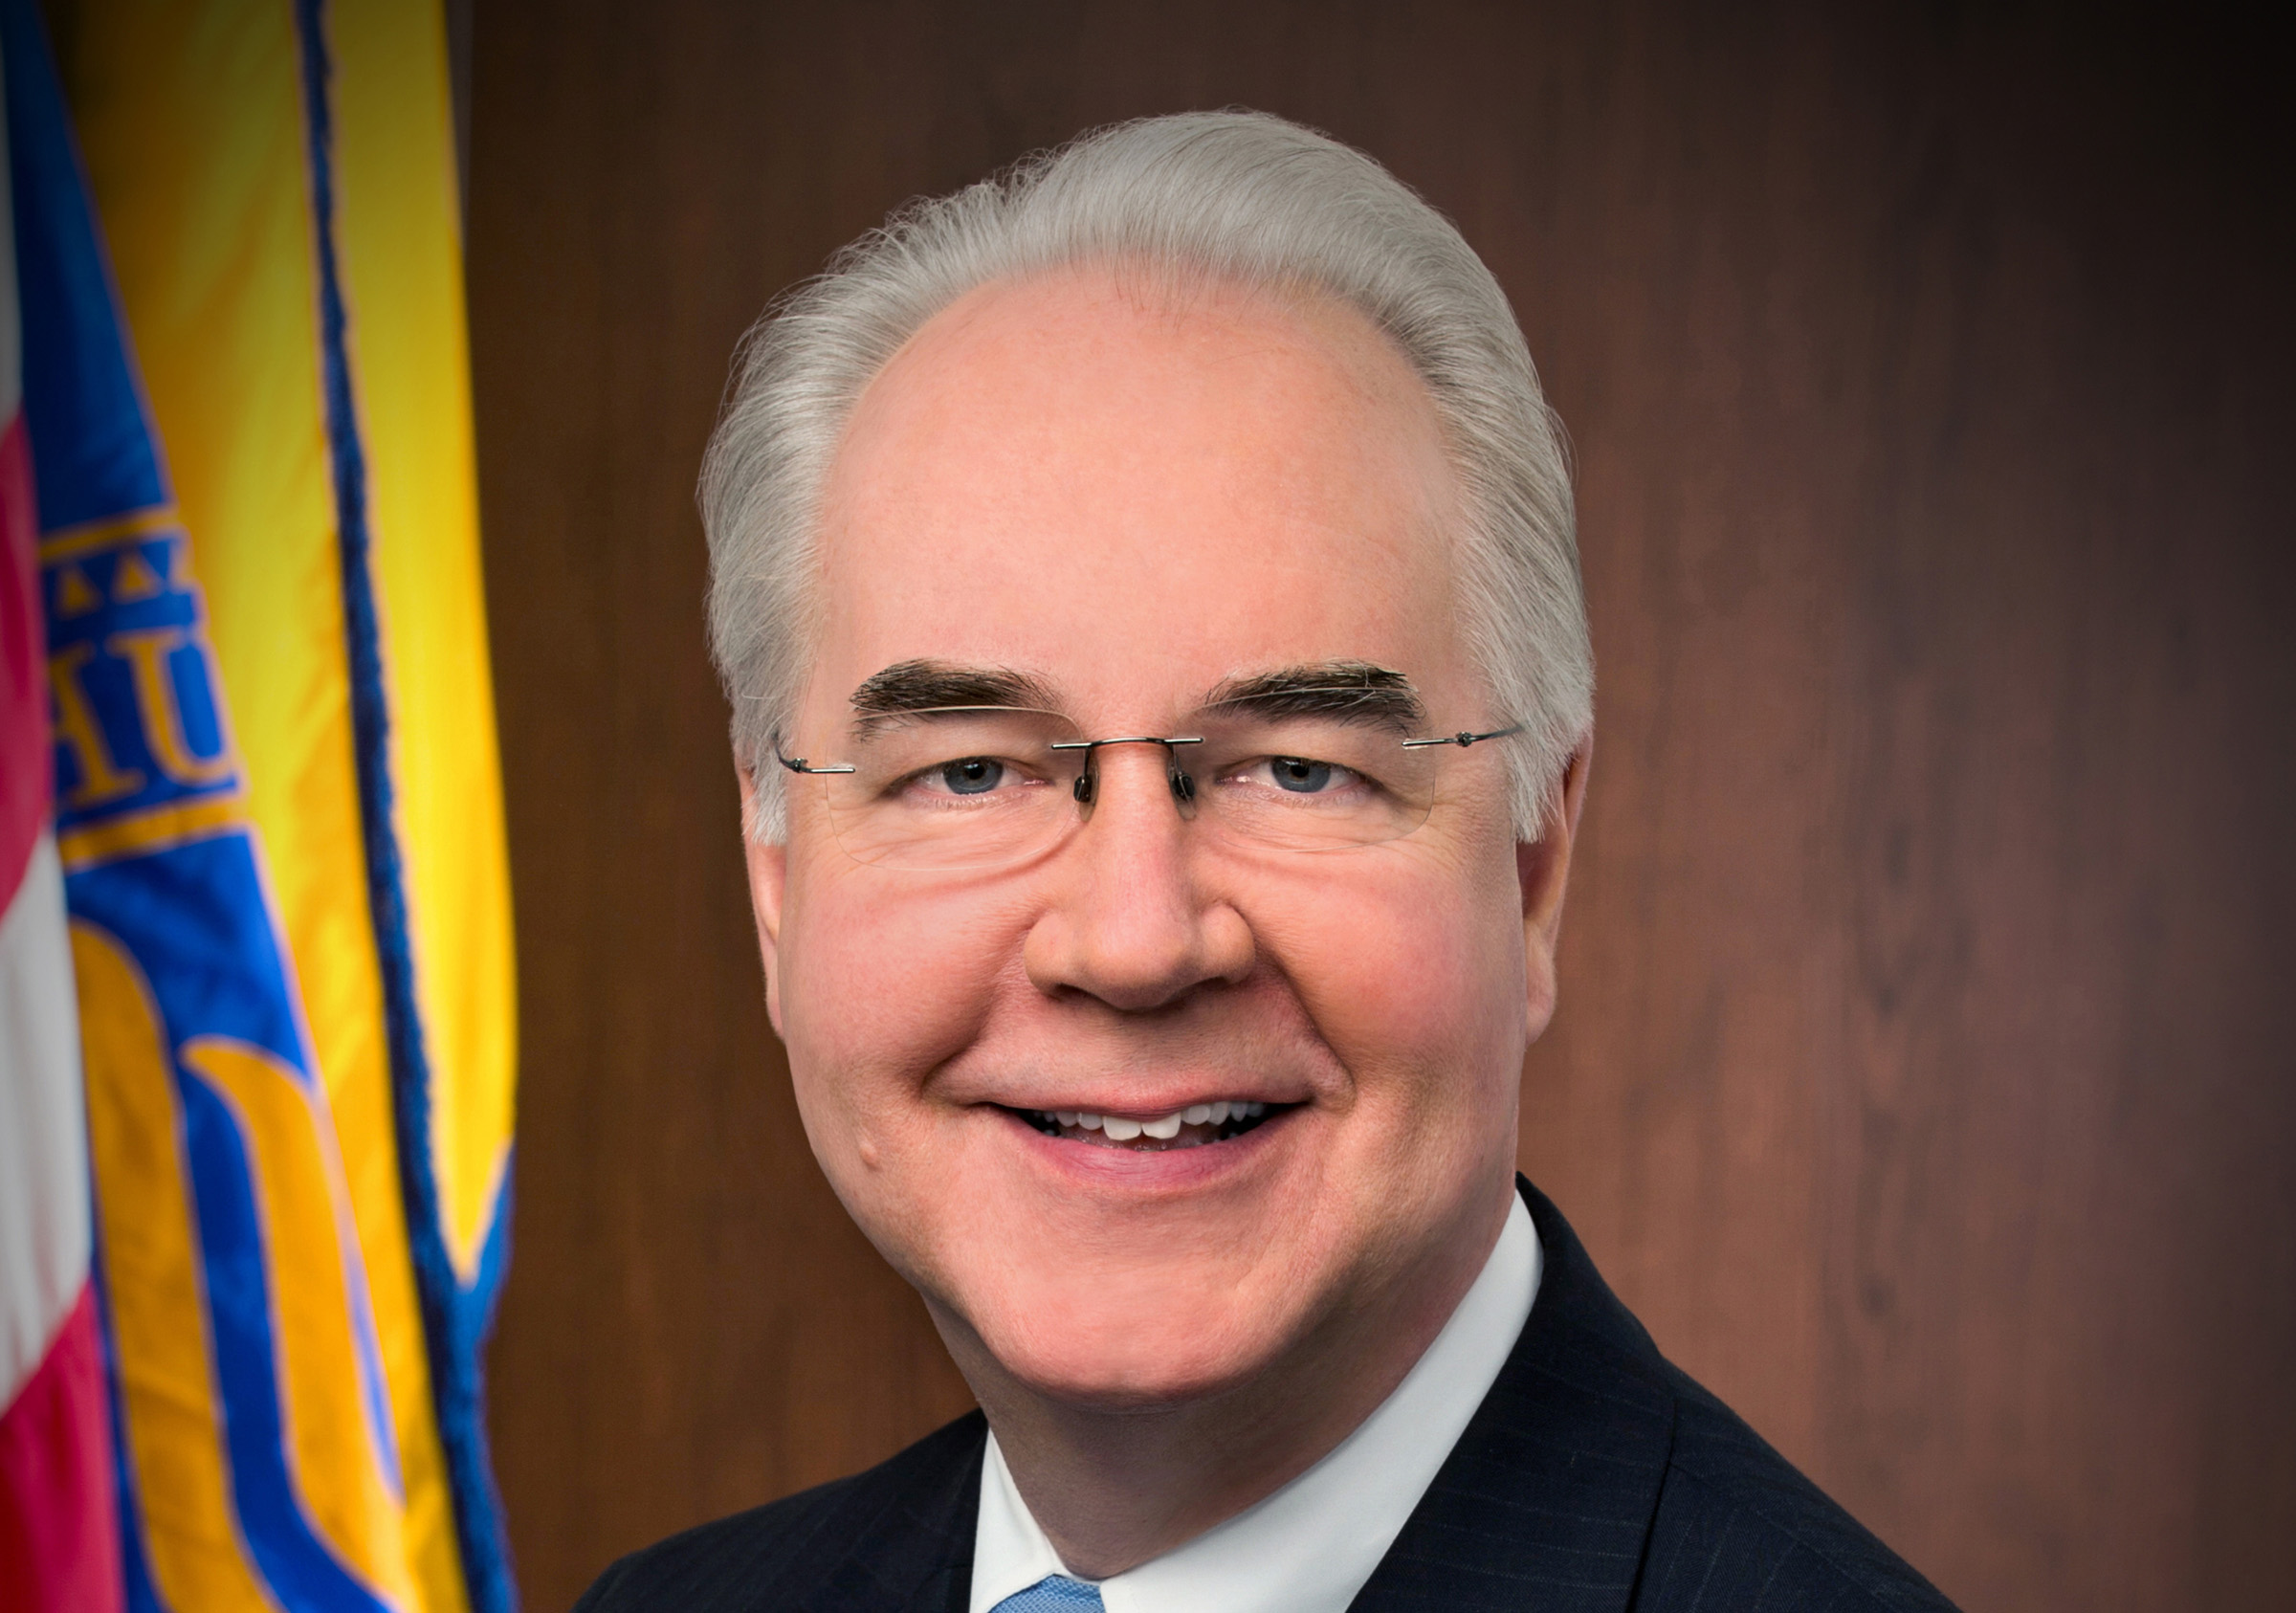 Health & Human Services Secretary Tom Price Resigns Amid Private Jet Scandal